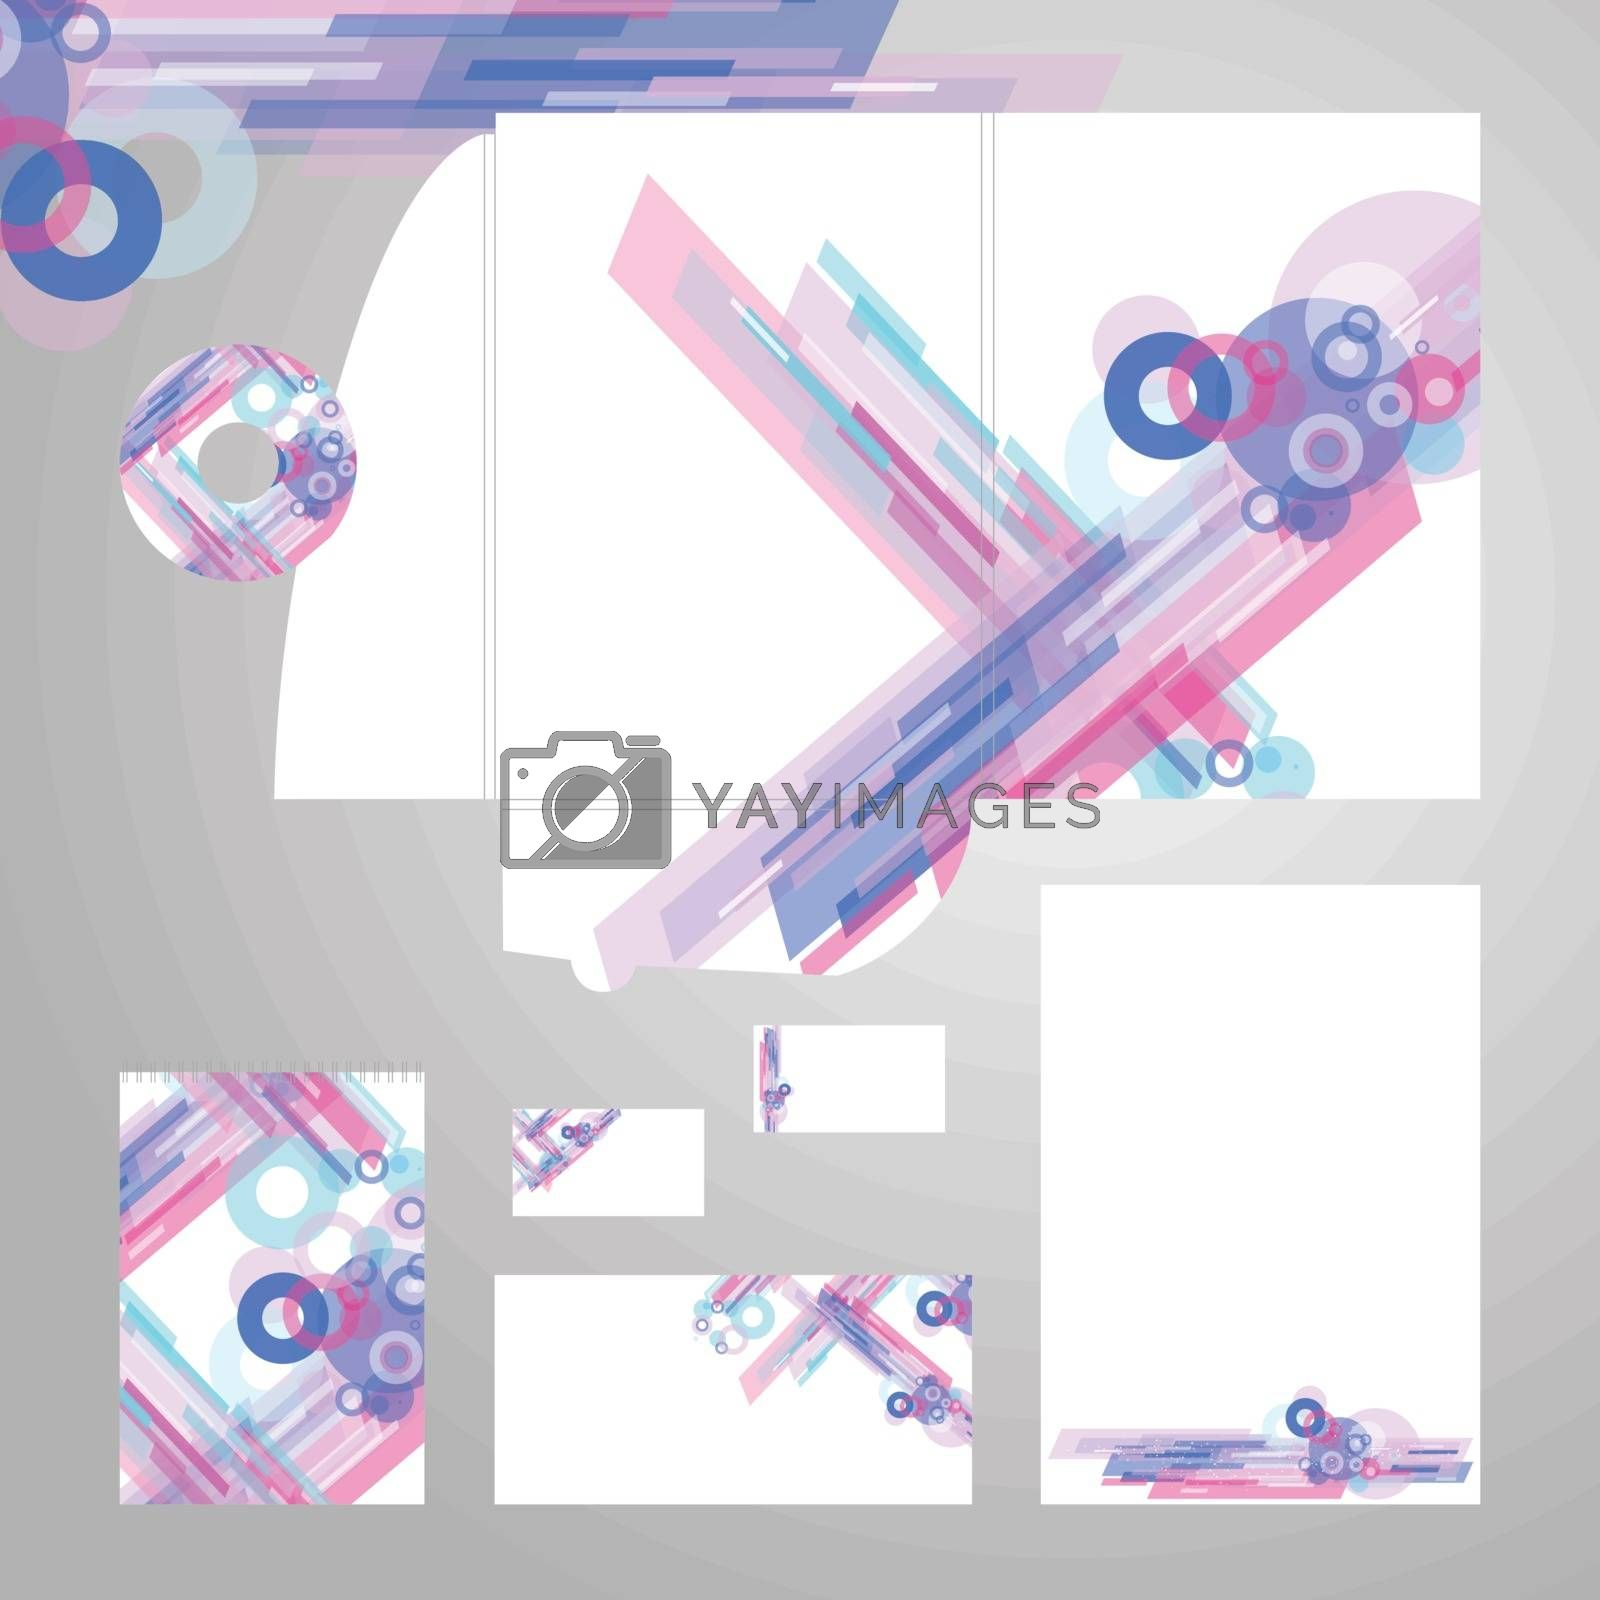 Royalty free image of Corporate Identity Template Vector by kisika